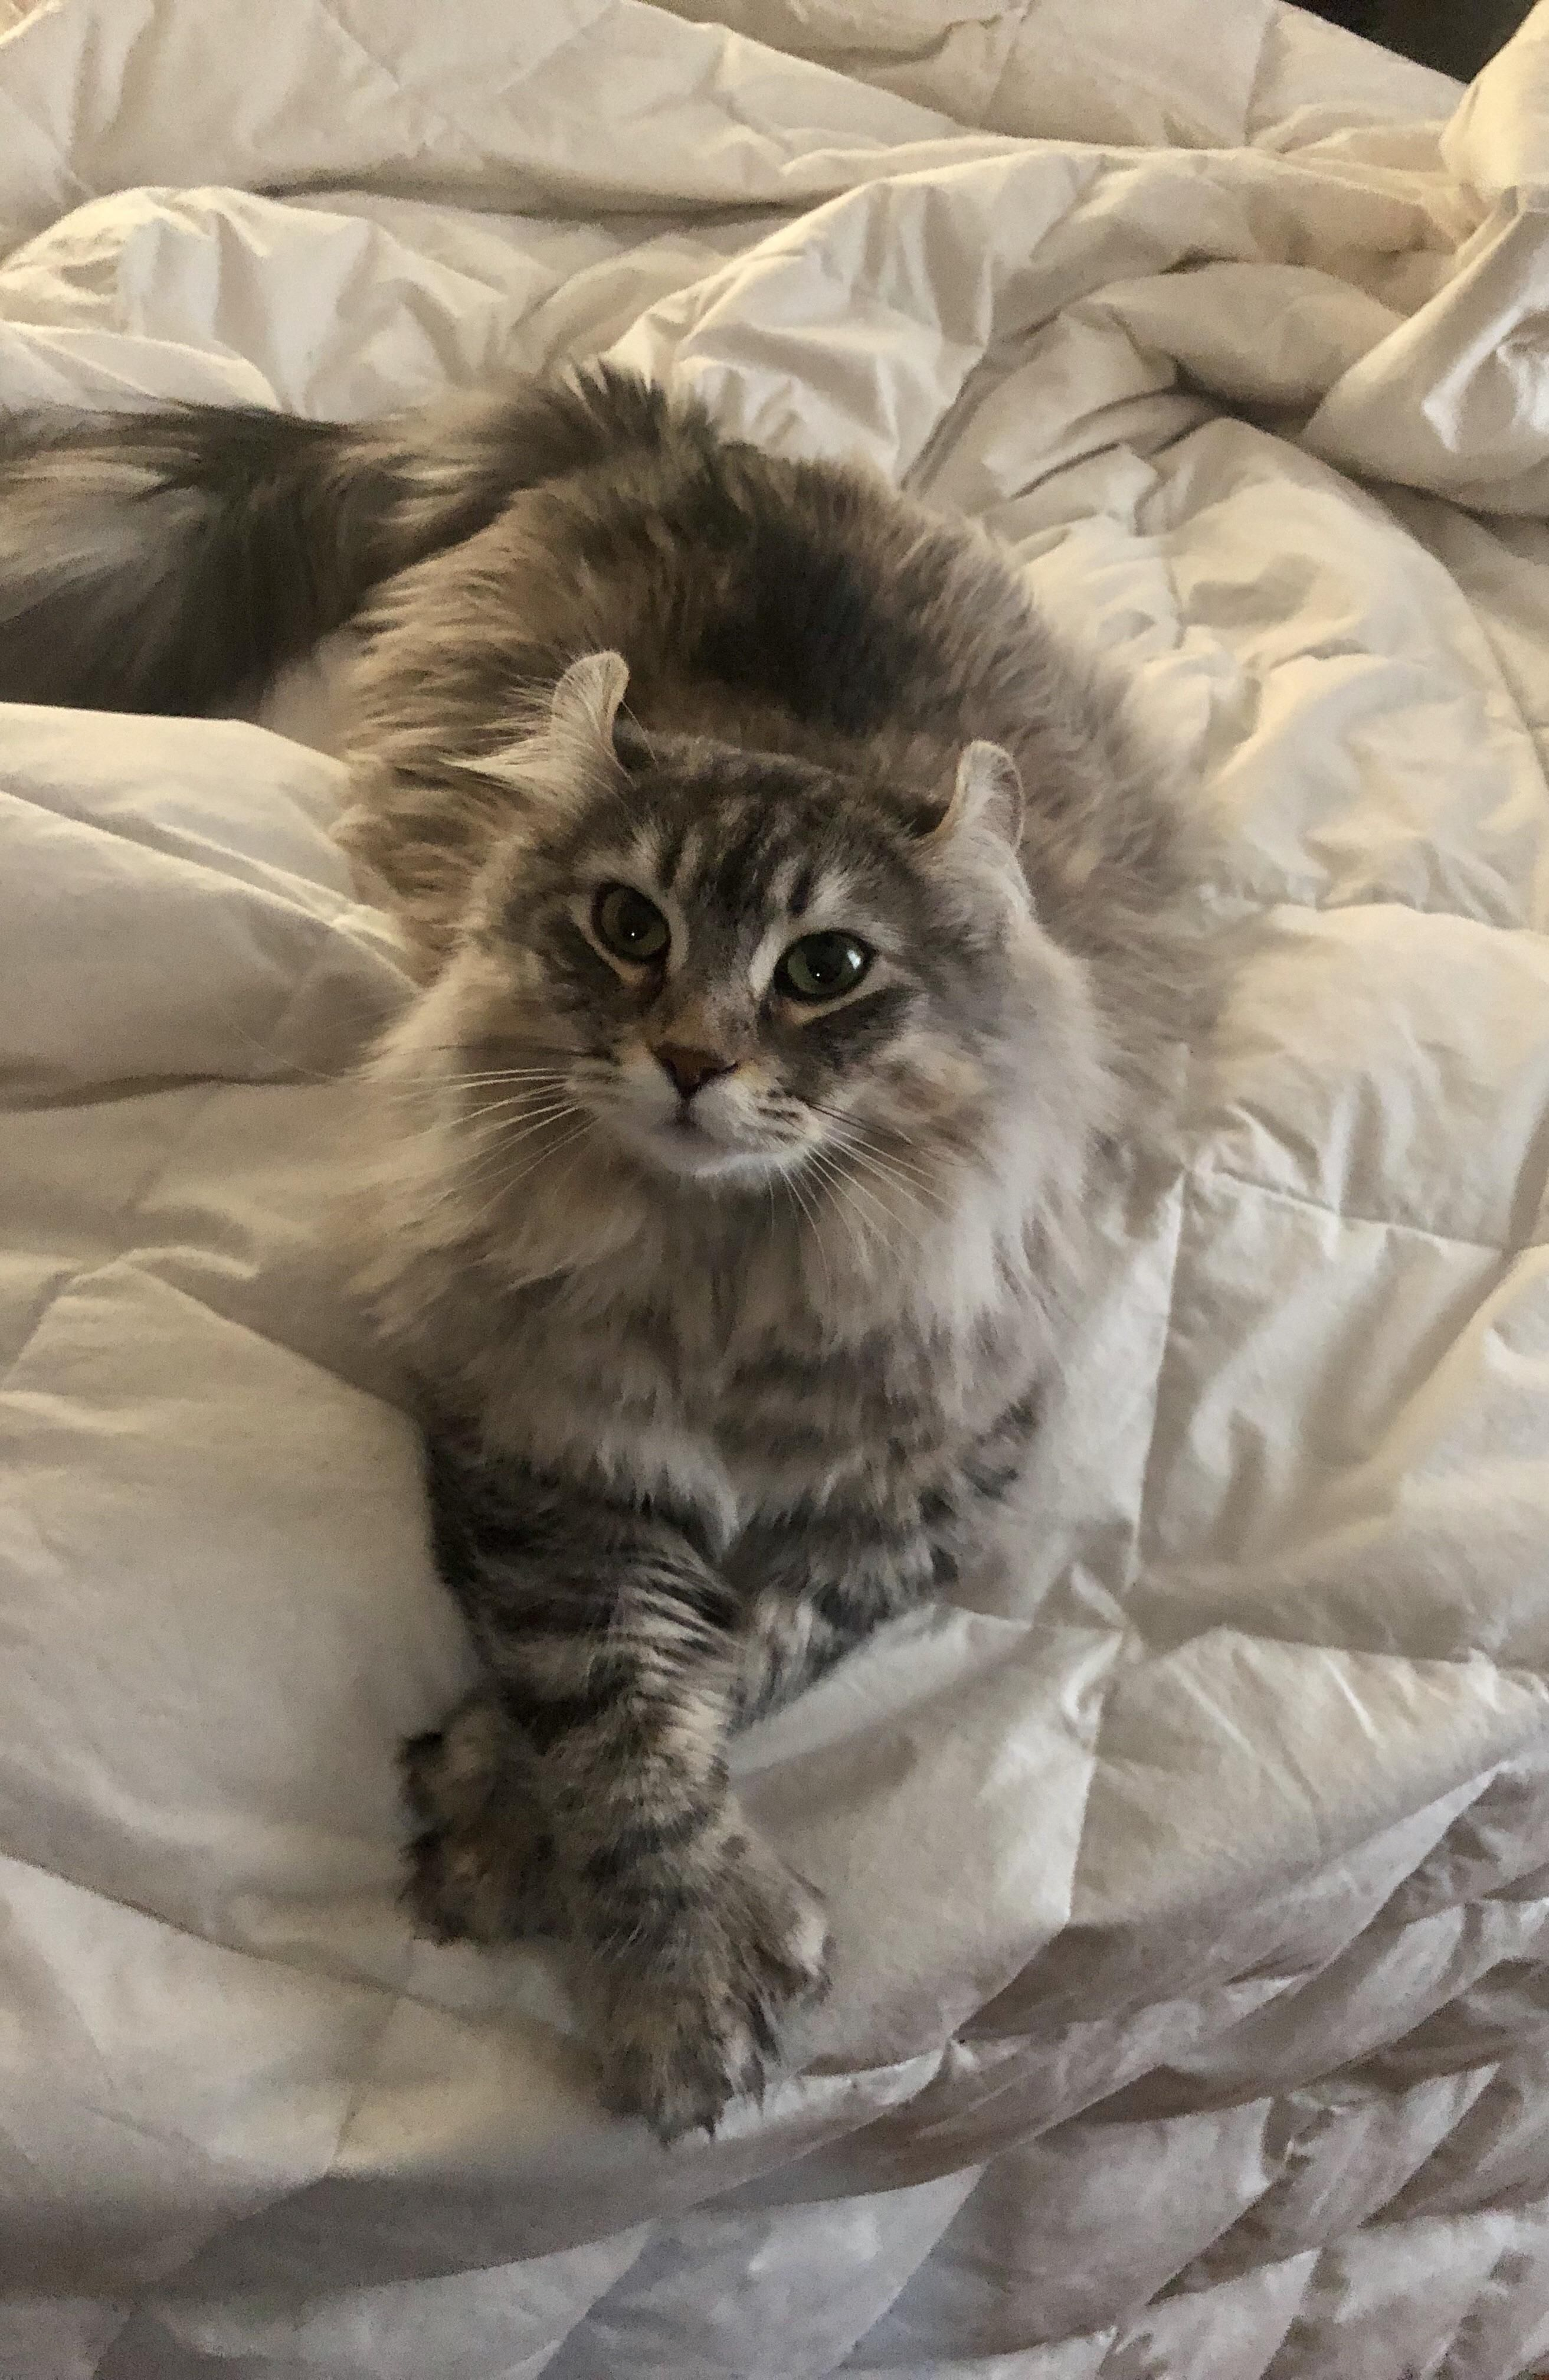 Fluffy beauty chilling on bed 😊 fluffycat beautifulcat